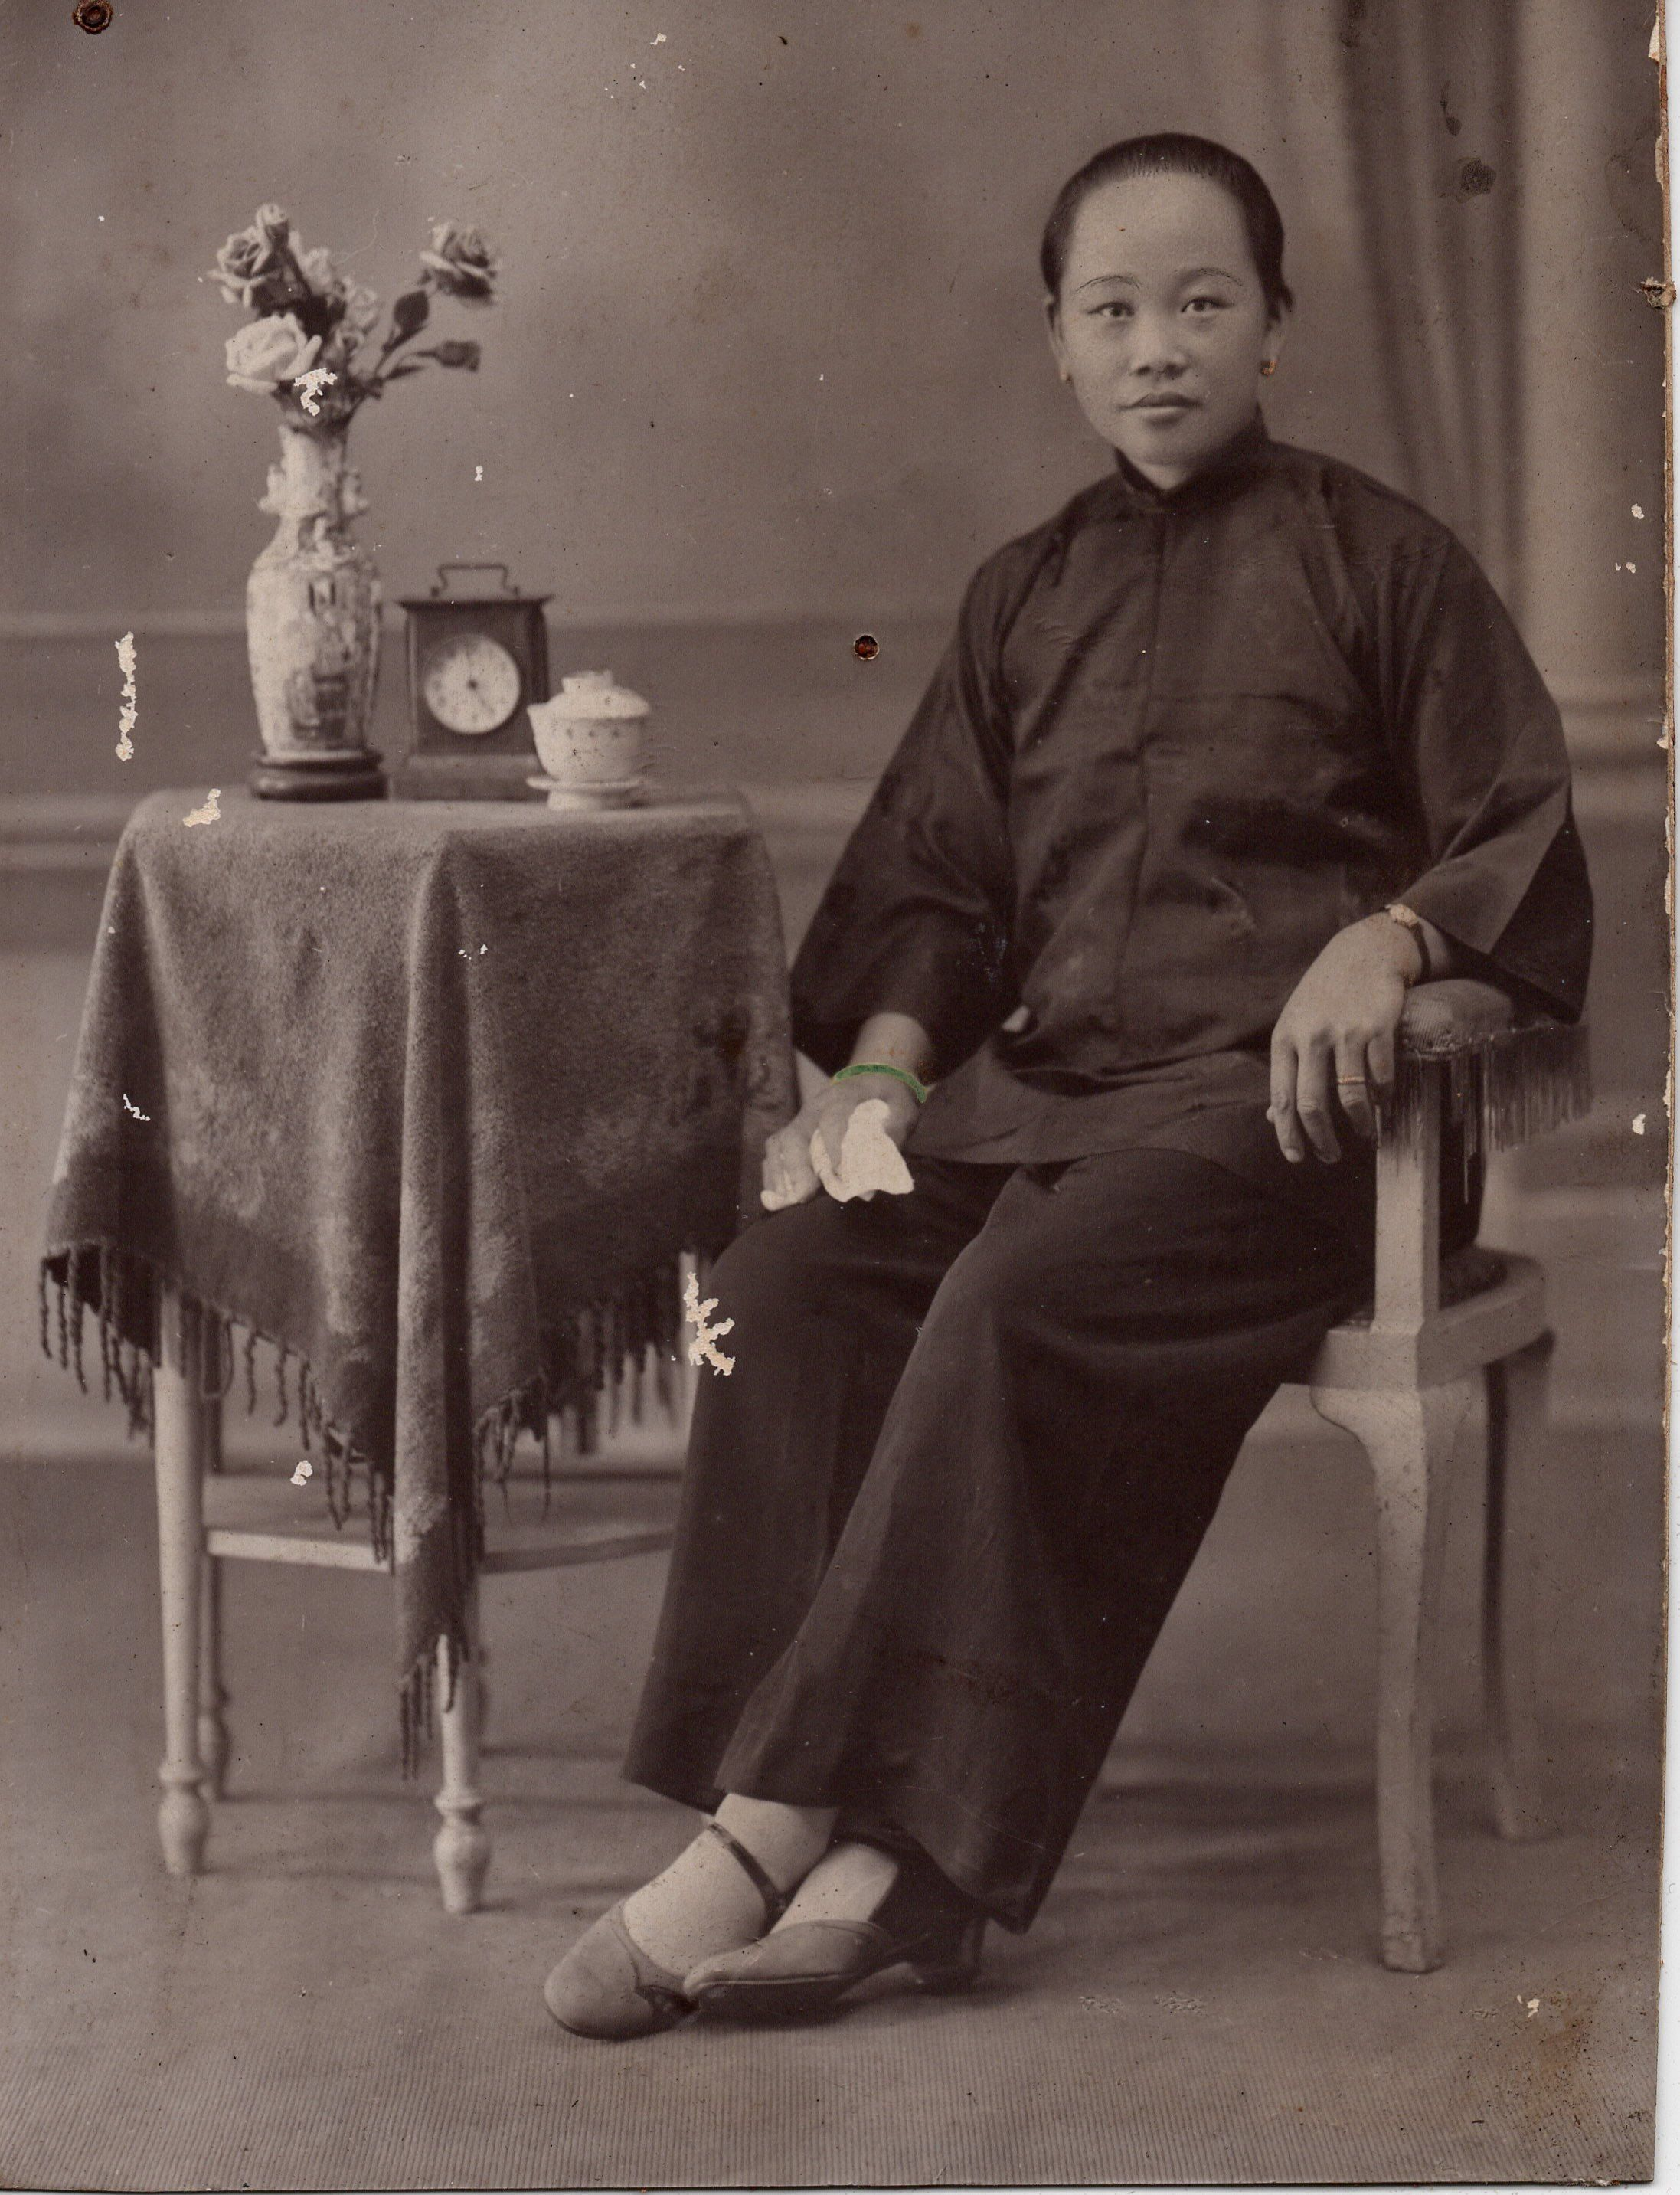 1890 early chinese portrait photograph black and white photography china photo qing era china chinese photography antiques portrait 19thcentury